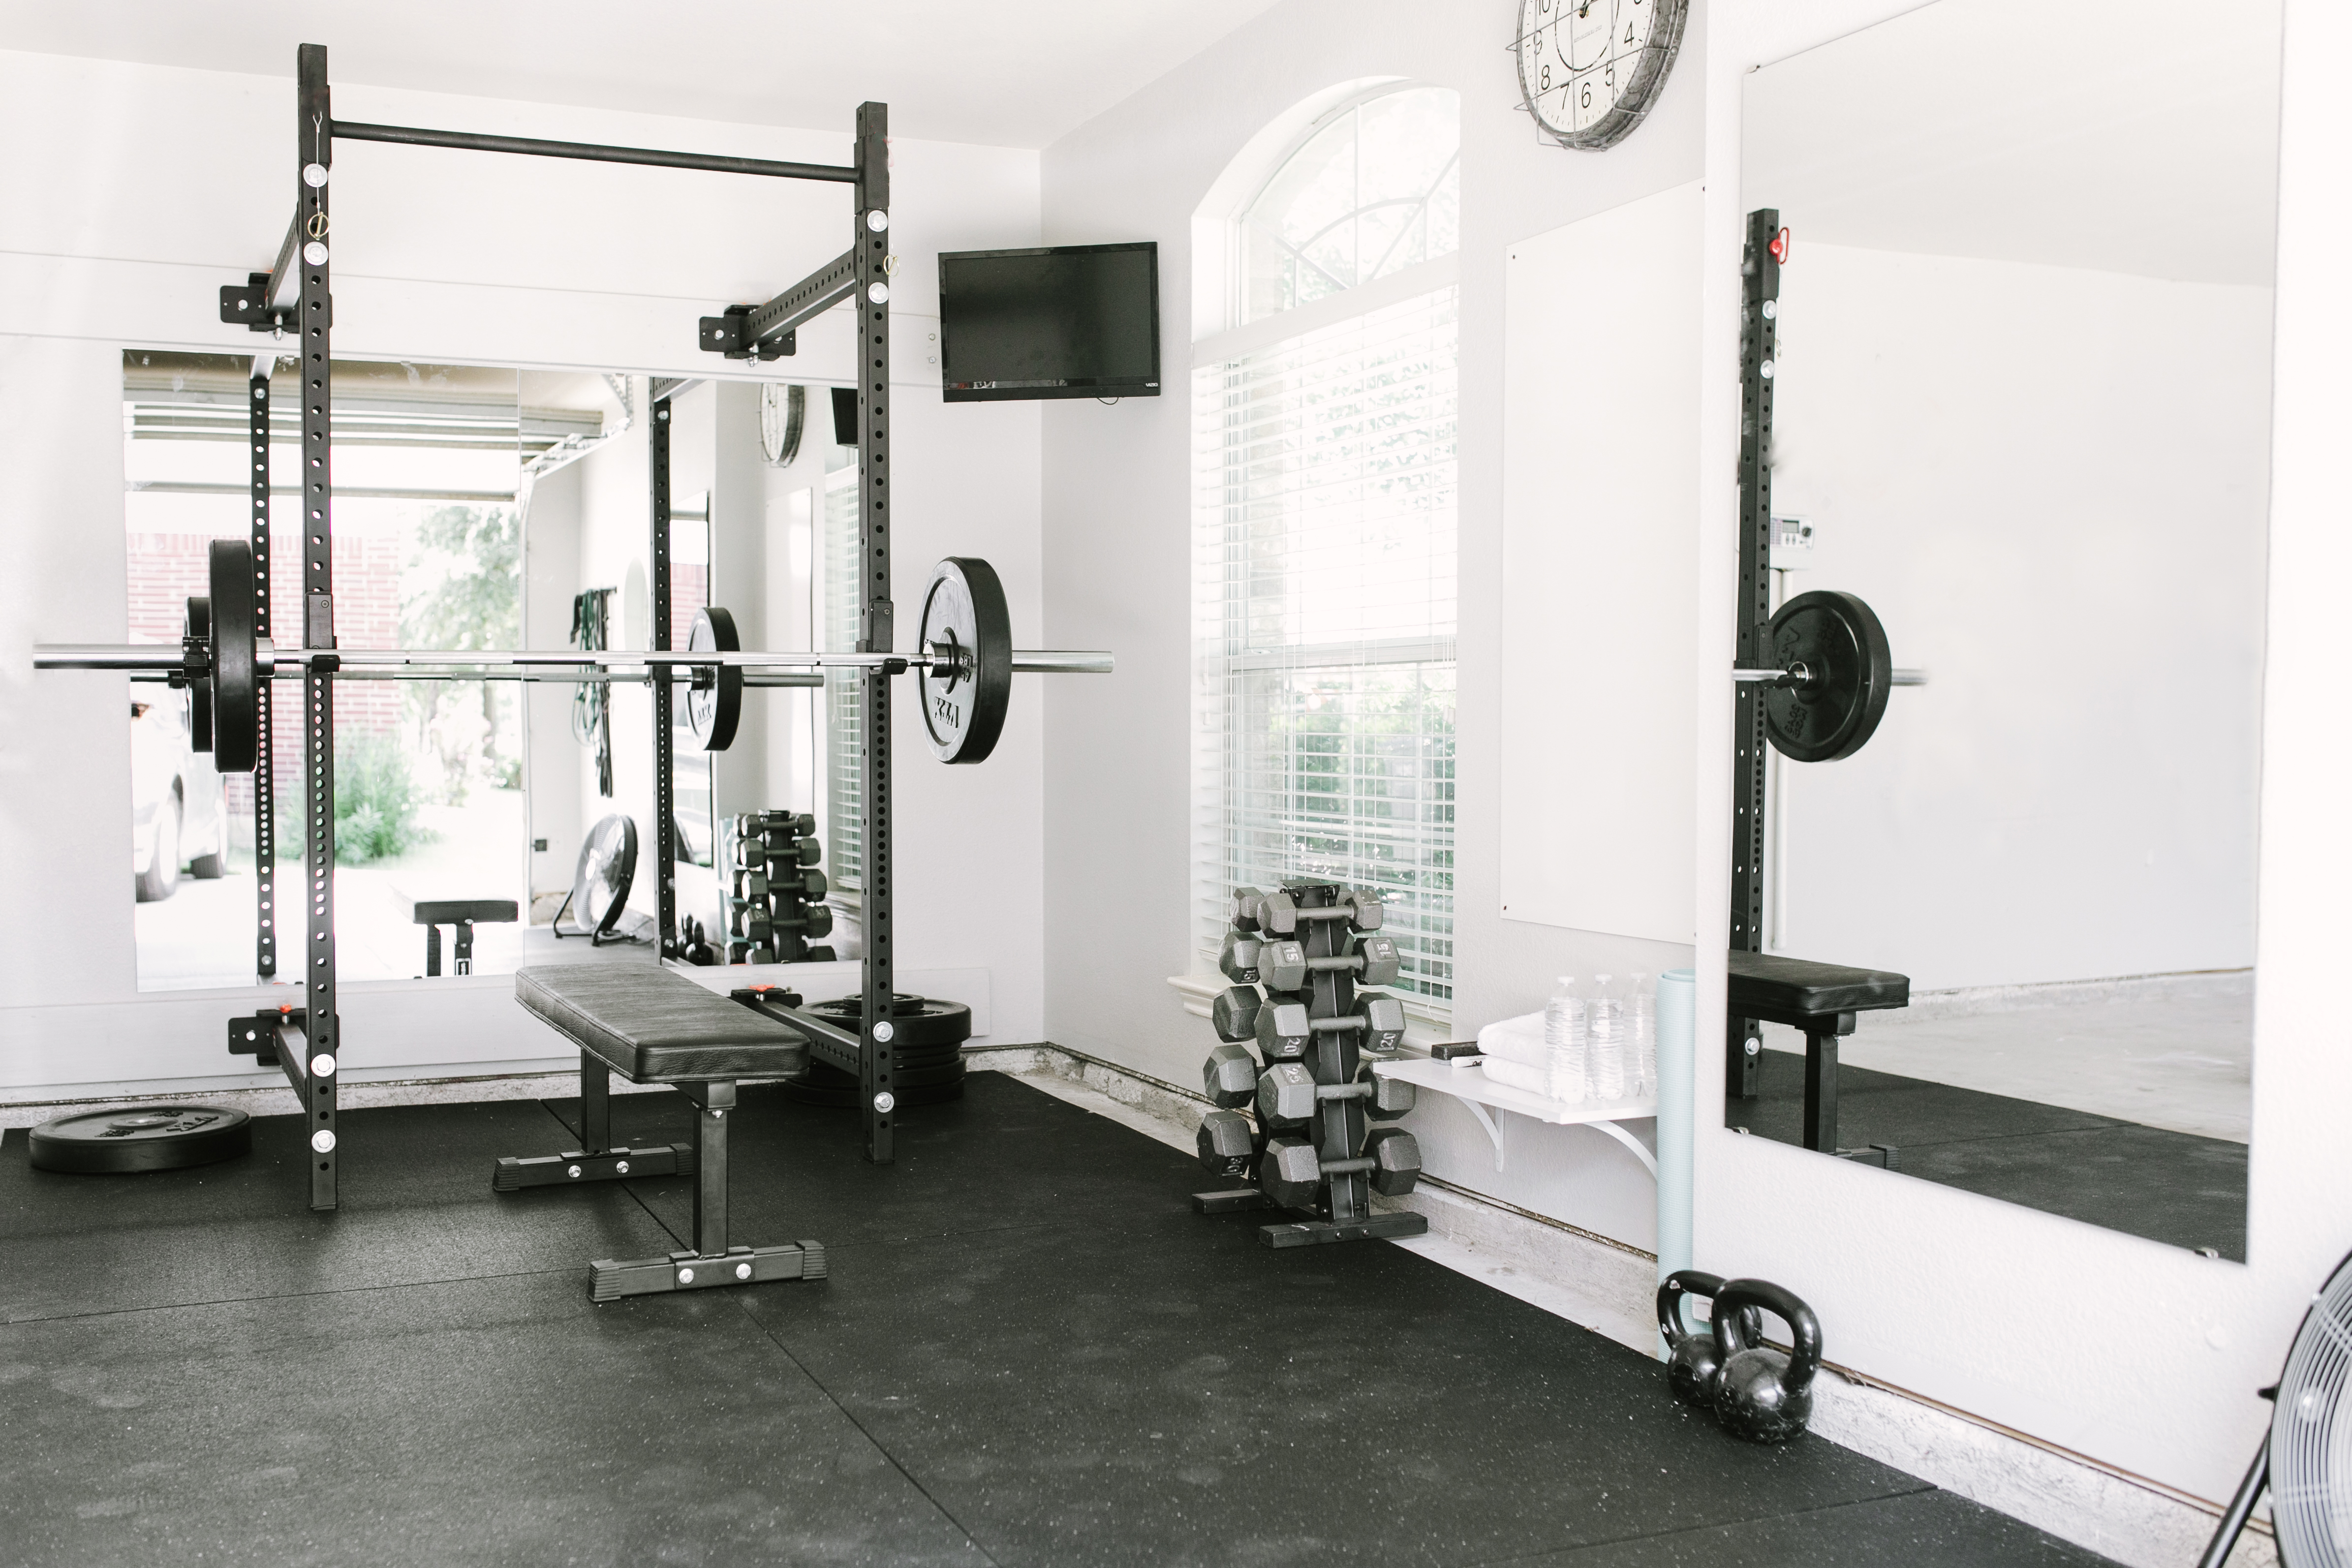 Garage gym ideas design cool home fitness decorating a small